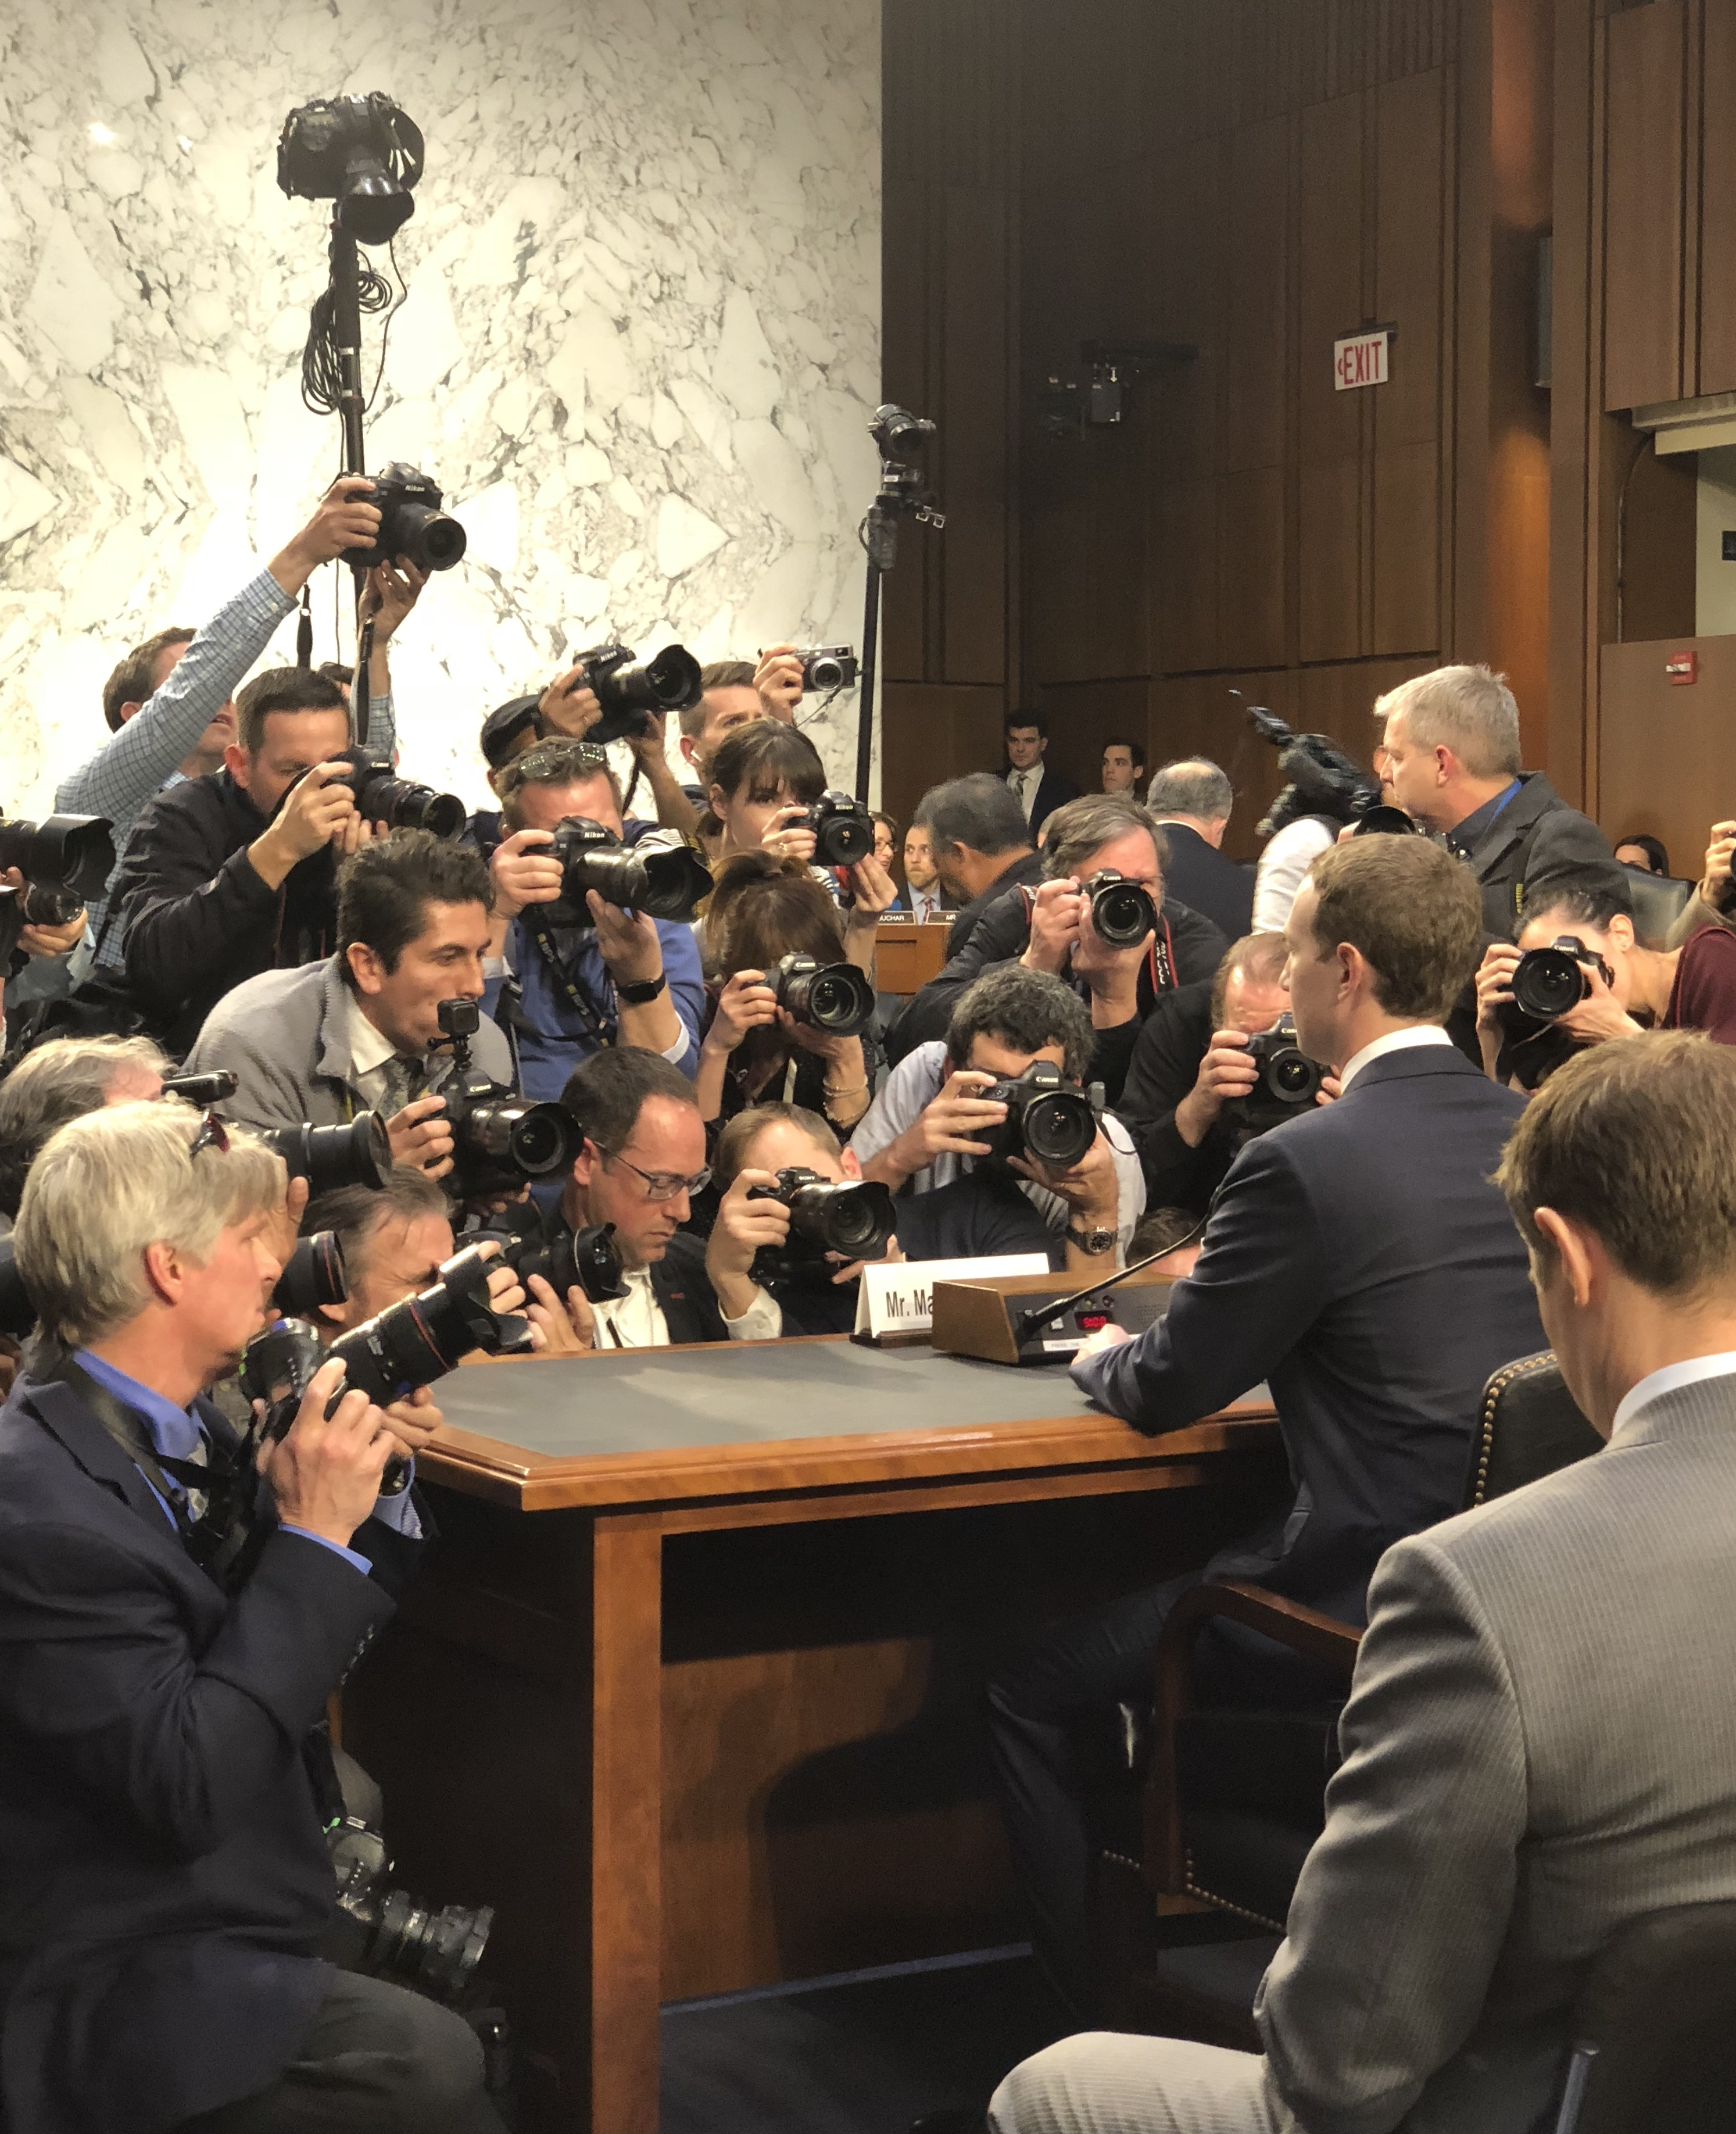 Facebook CEO Mark Zuckerberg, seated at the table where he will testify to Congress, surrounded by photographers